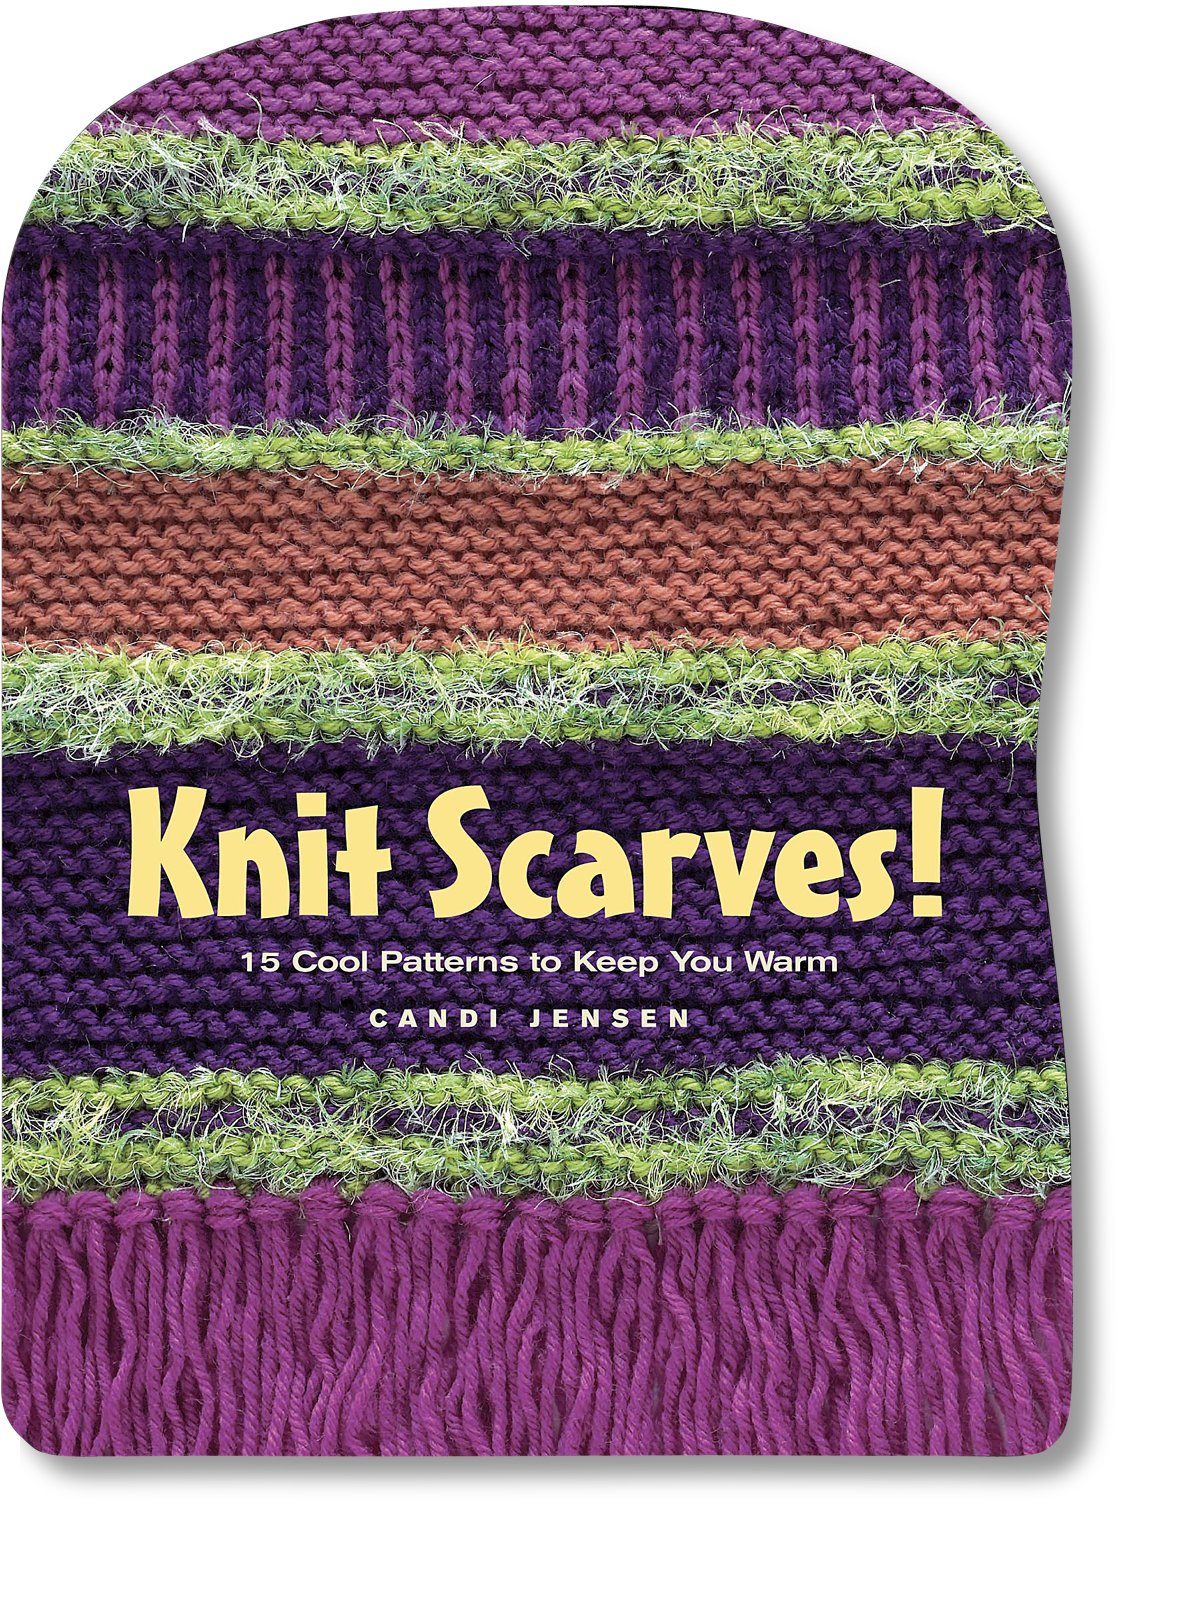 Amazon.com: Knit Scarves!: 16 Cool Patterns to Keep You Warm ...